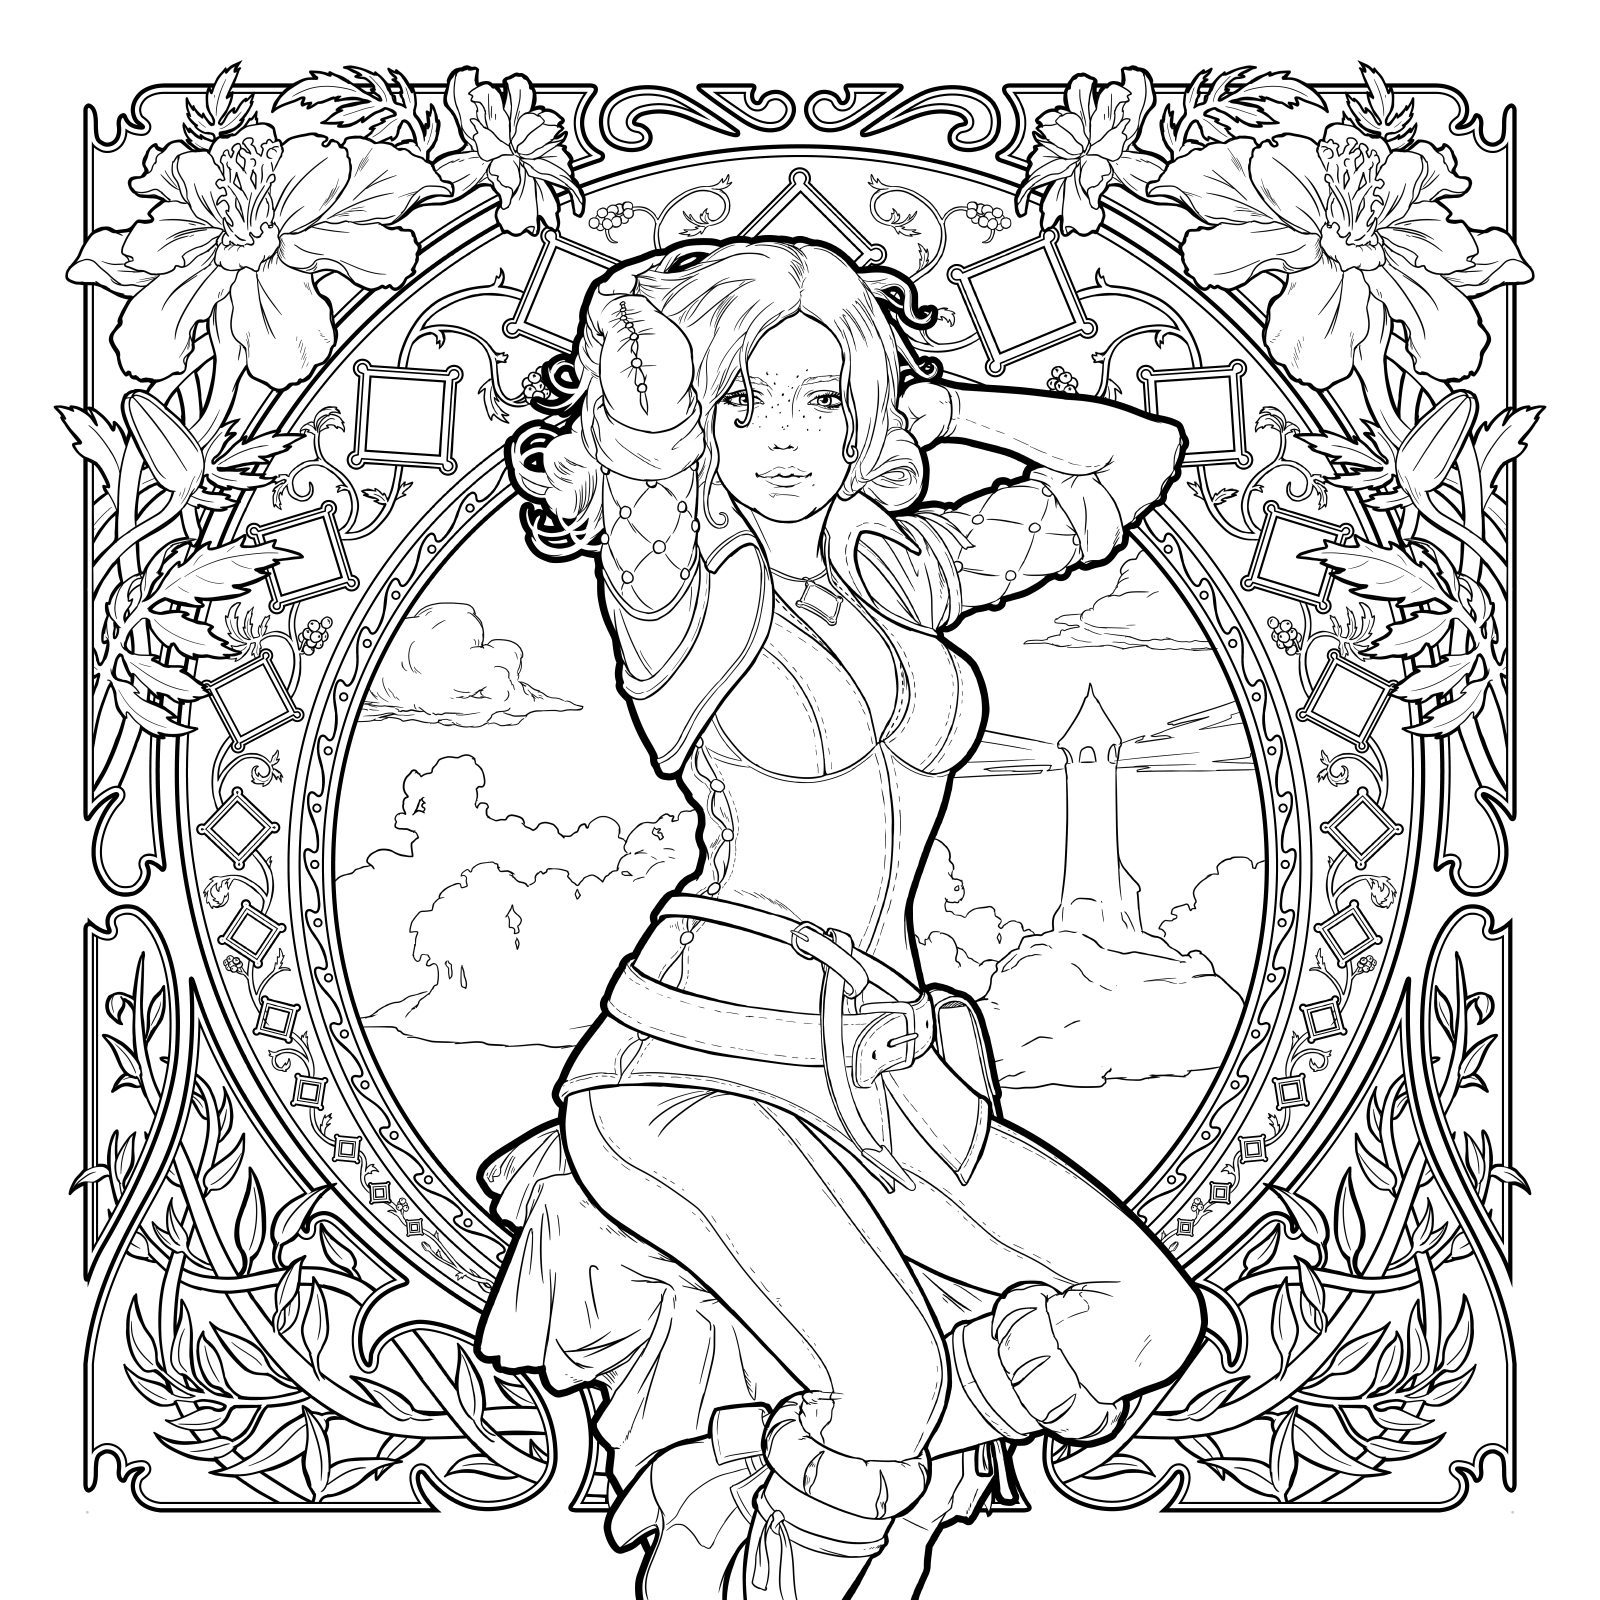 DarkHorse_WitcherColoringBook_Triss_Submission_v1.jpg